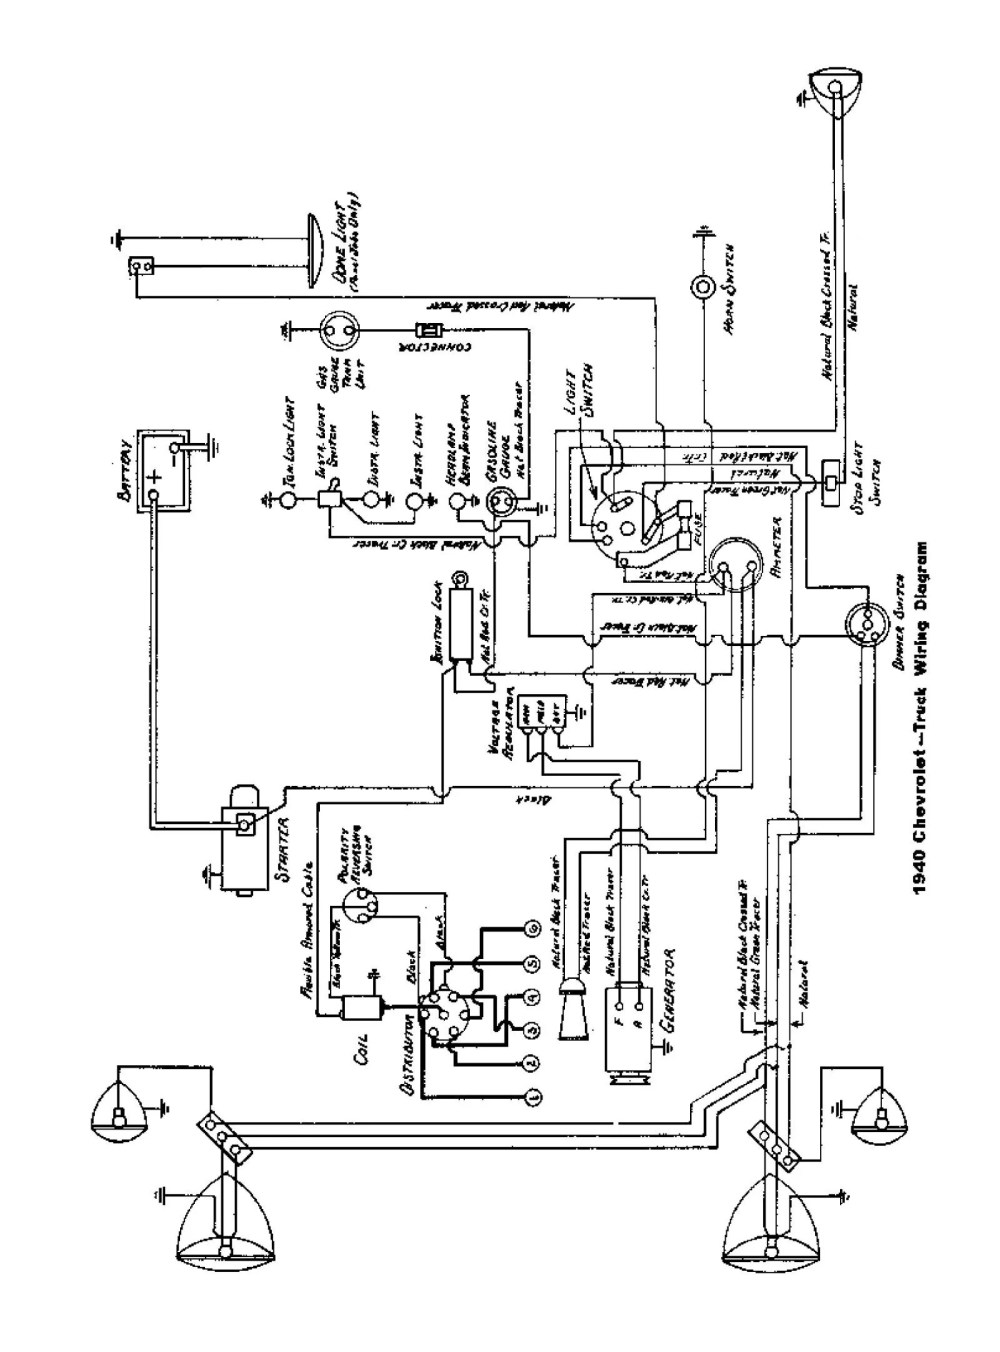 medium resolution of 1952 international truck wiring diagram schematic wiring diagram international truck wheels international truck wiring harness